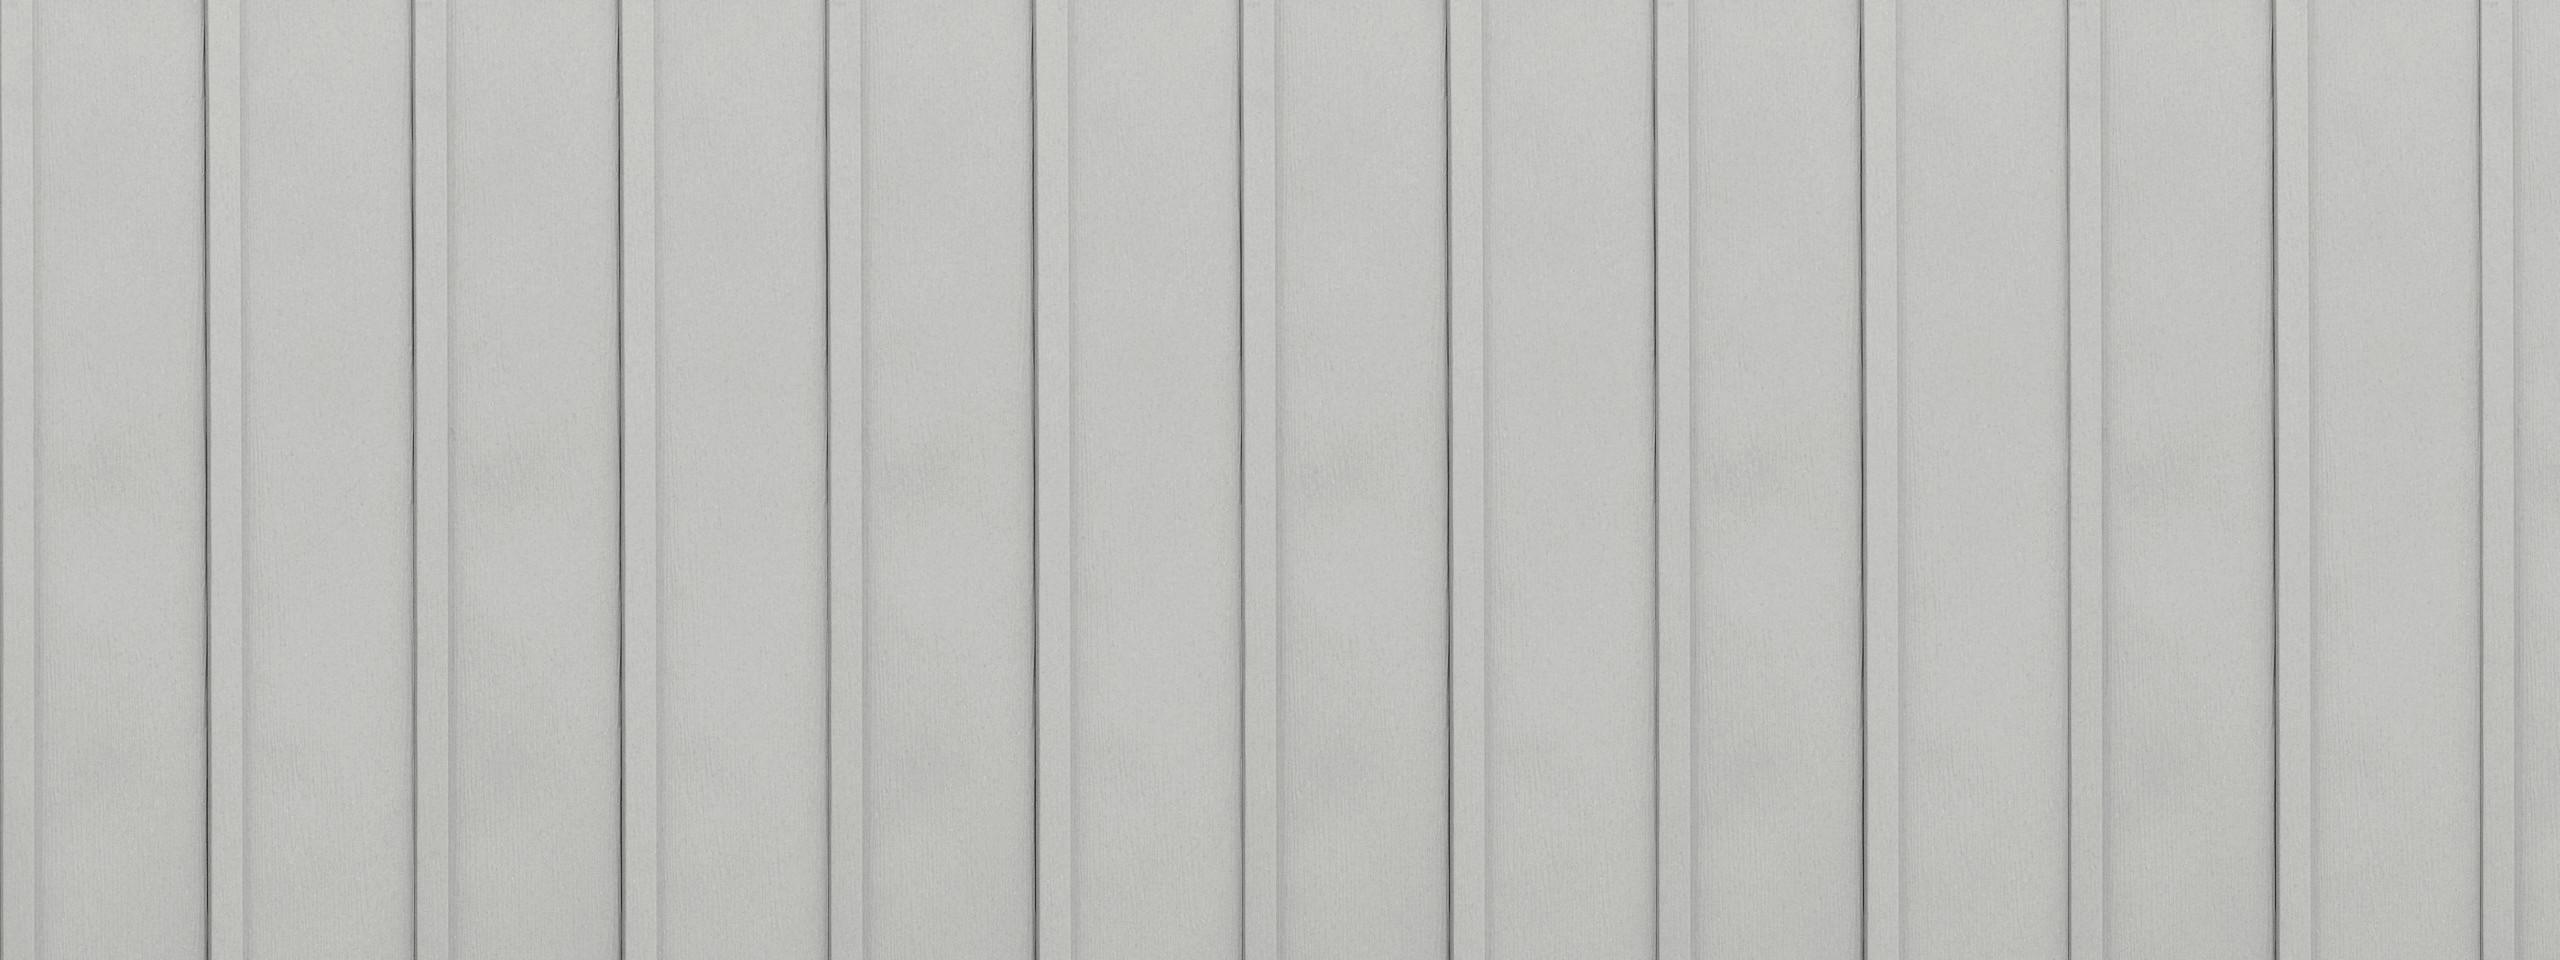 Entex Coated Steel Siding Edco Products Made In Minnesota